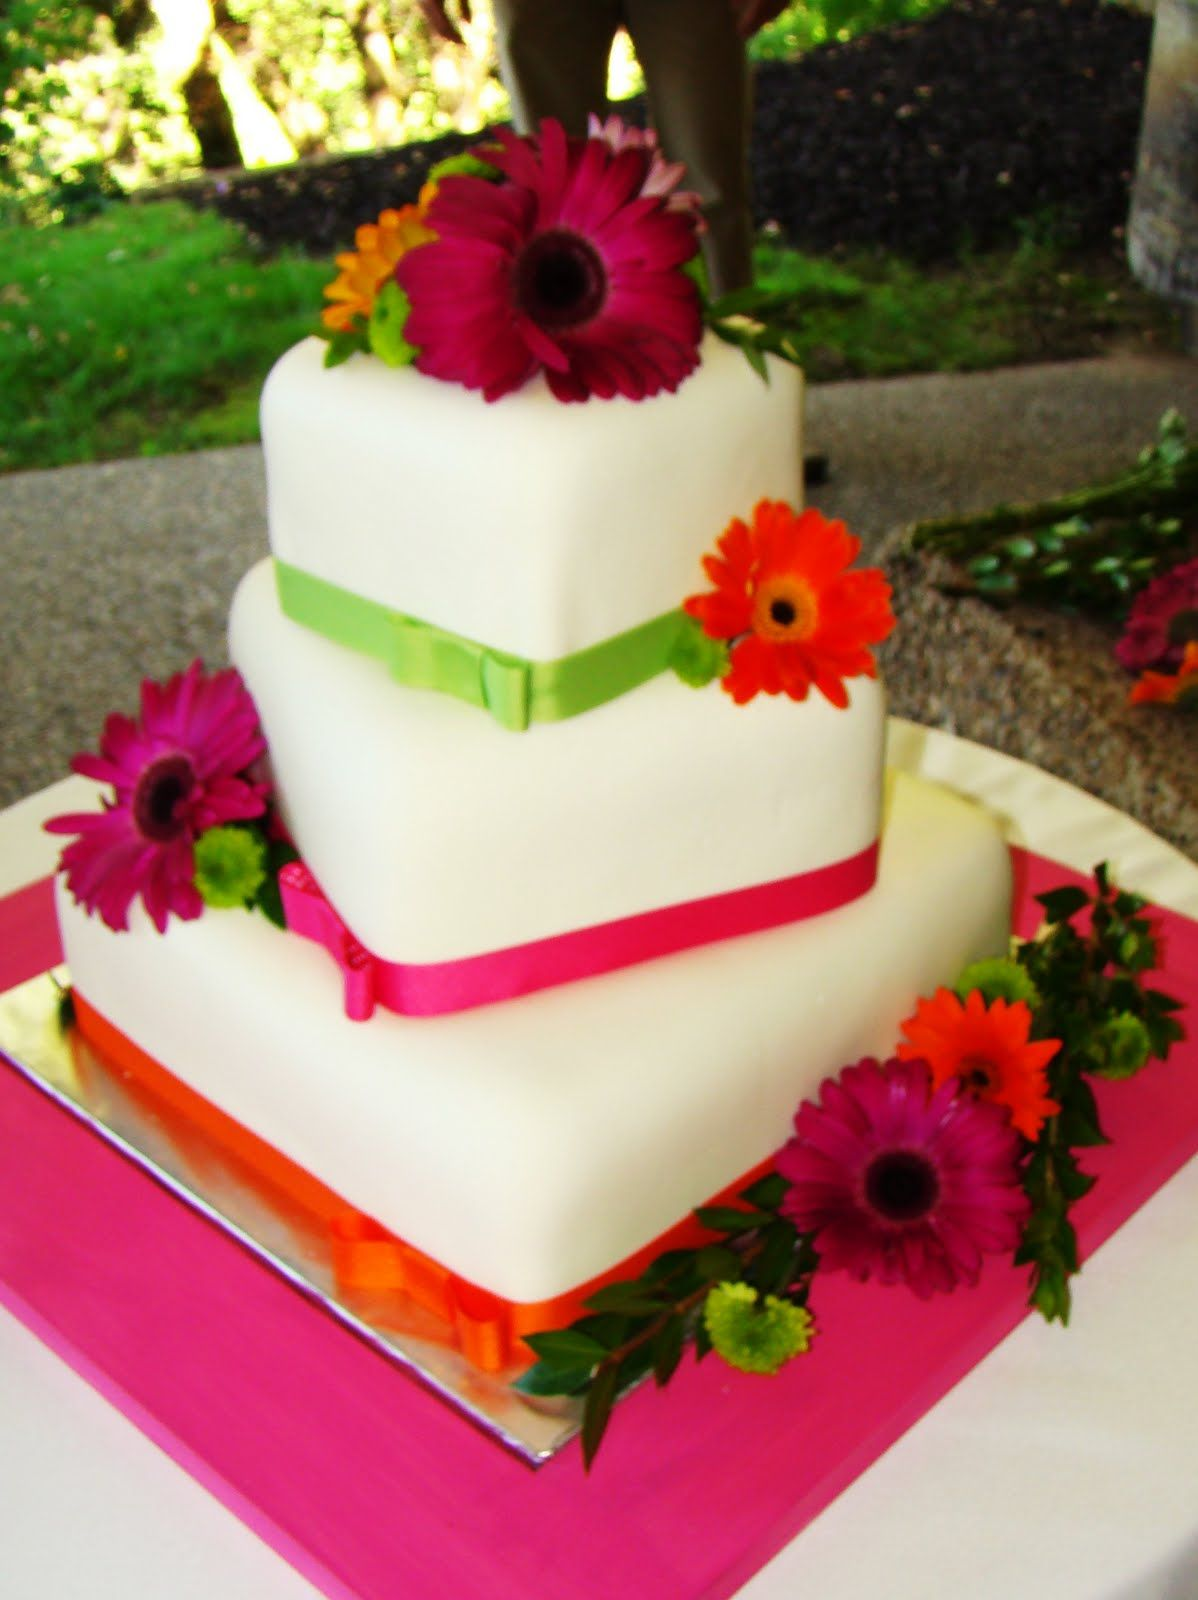 Country wedding cakes melissa wedding cake this was a very last